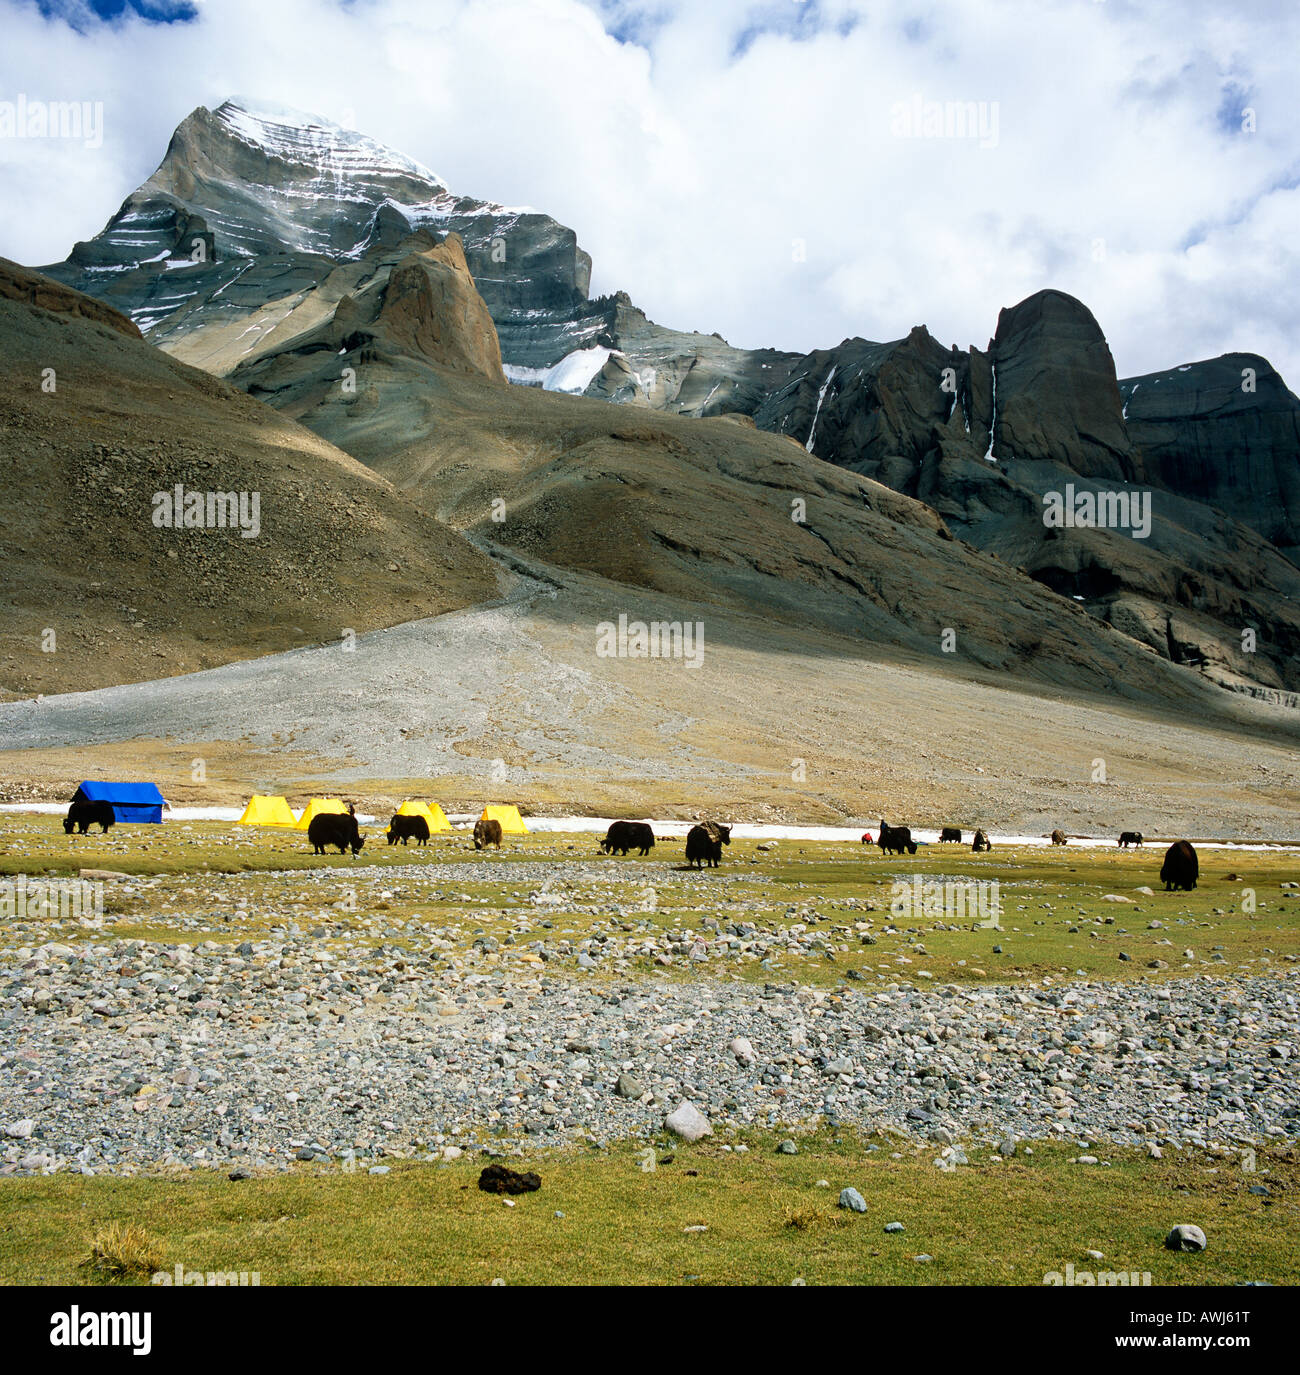 West face Of Mount Kailash With Yaks and Tents  Western Tibet Asia - Stock Image